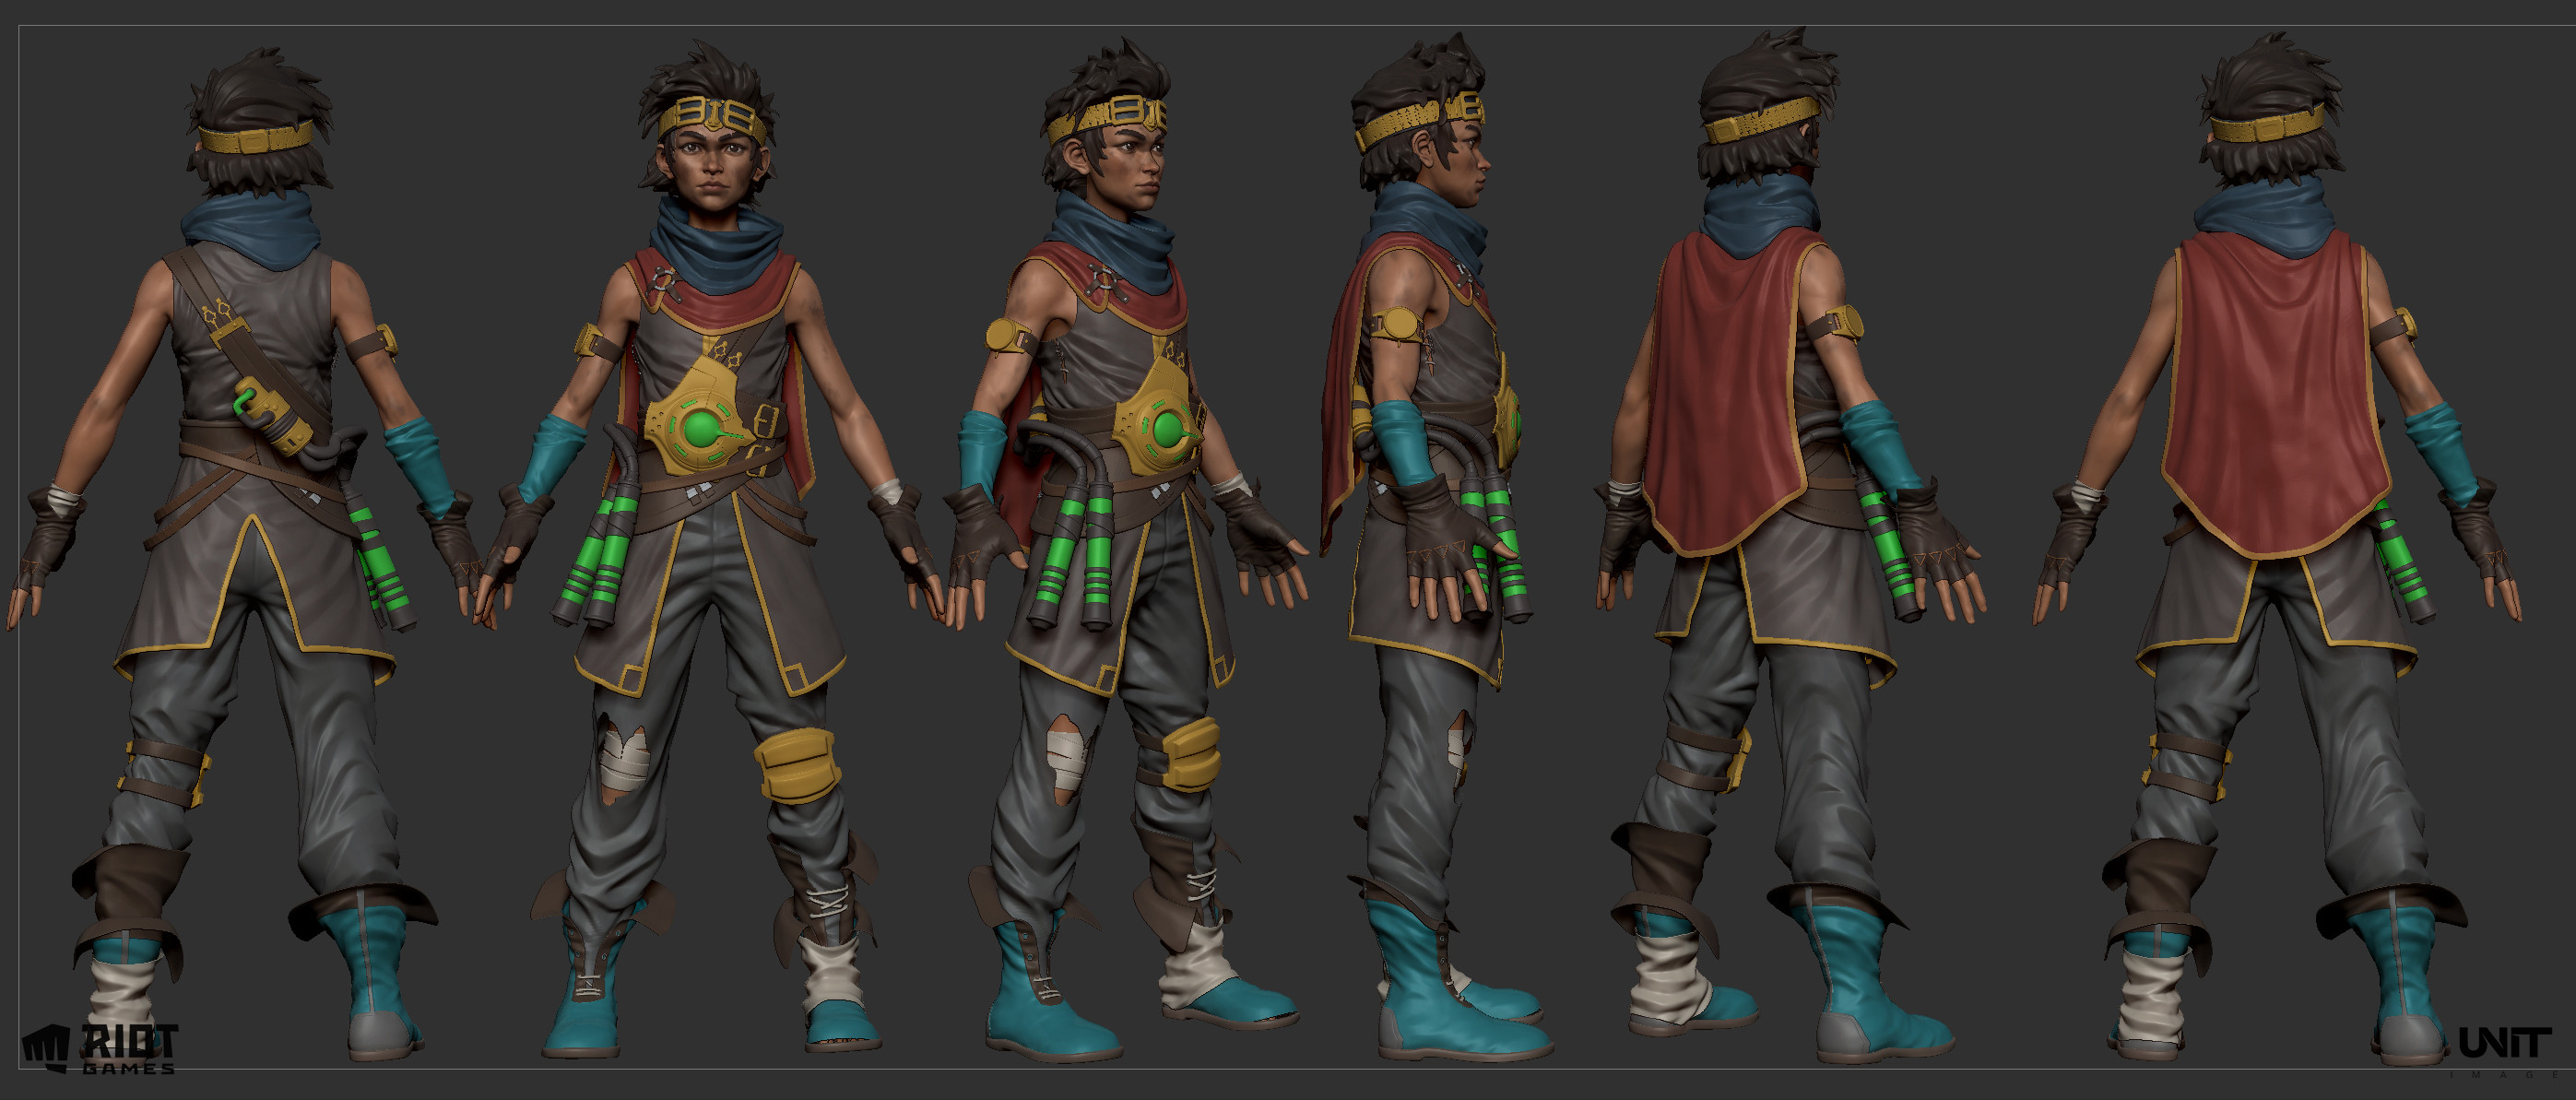 WIP - zbrush concepting